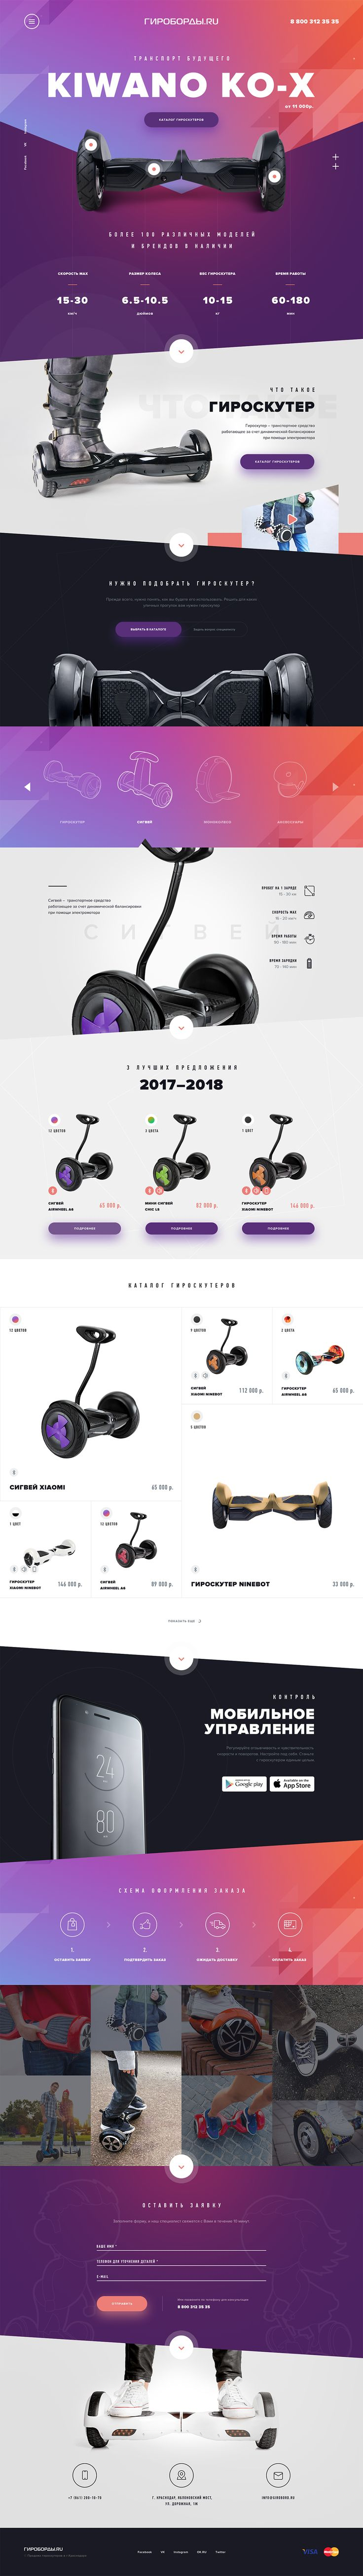 Hoverboard on Behance - Love a good success story? Learn how I went from zero to 1 million in sales in 5 months with an e-commerce store.